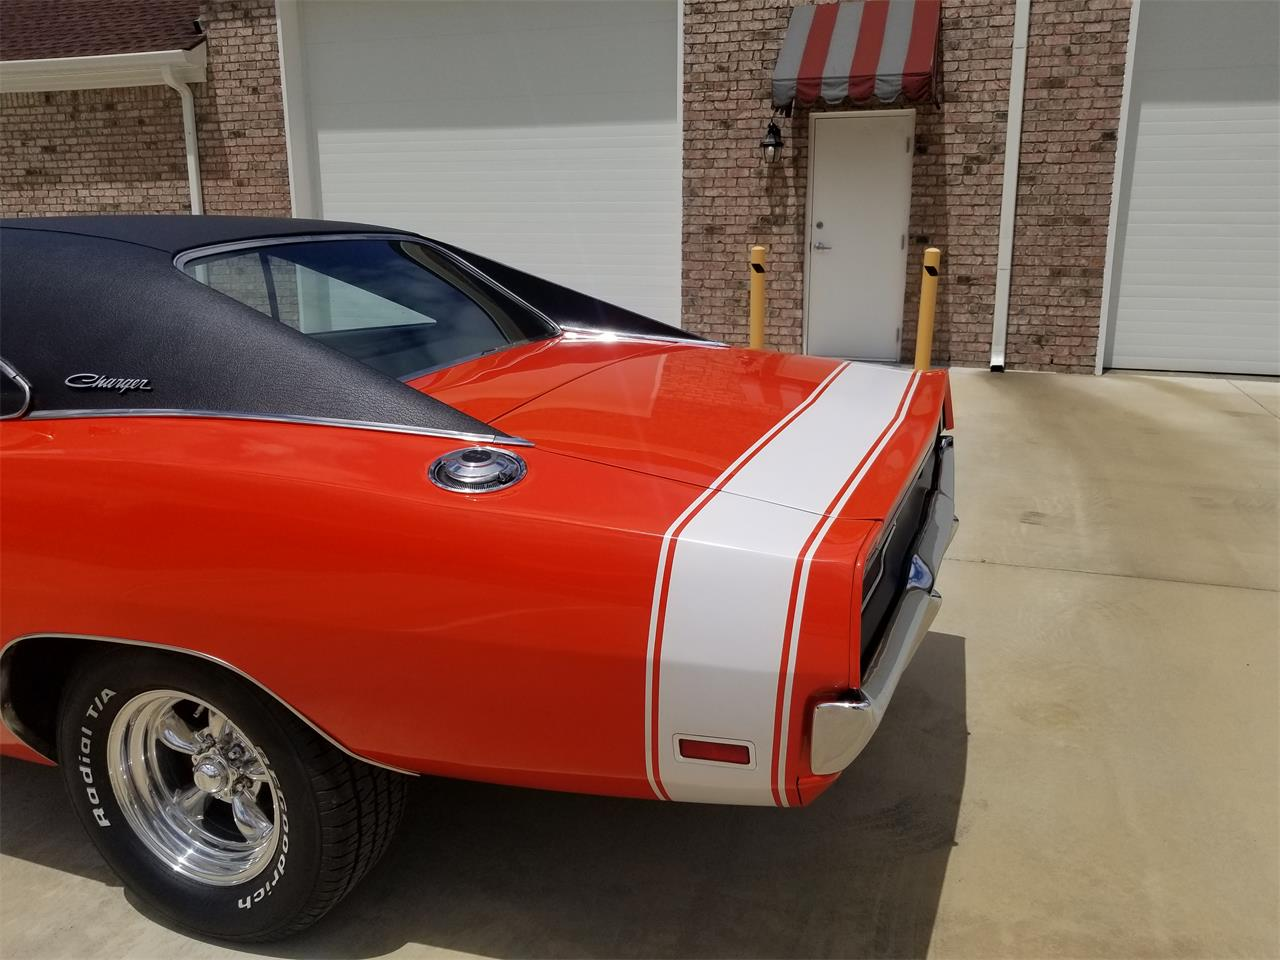 Large Picture of Classic '69 Dodge Charger located in Smyrna Tennessee - $47,500.00 Offered by a Private Seller - Q45J